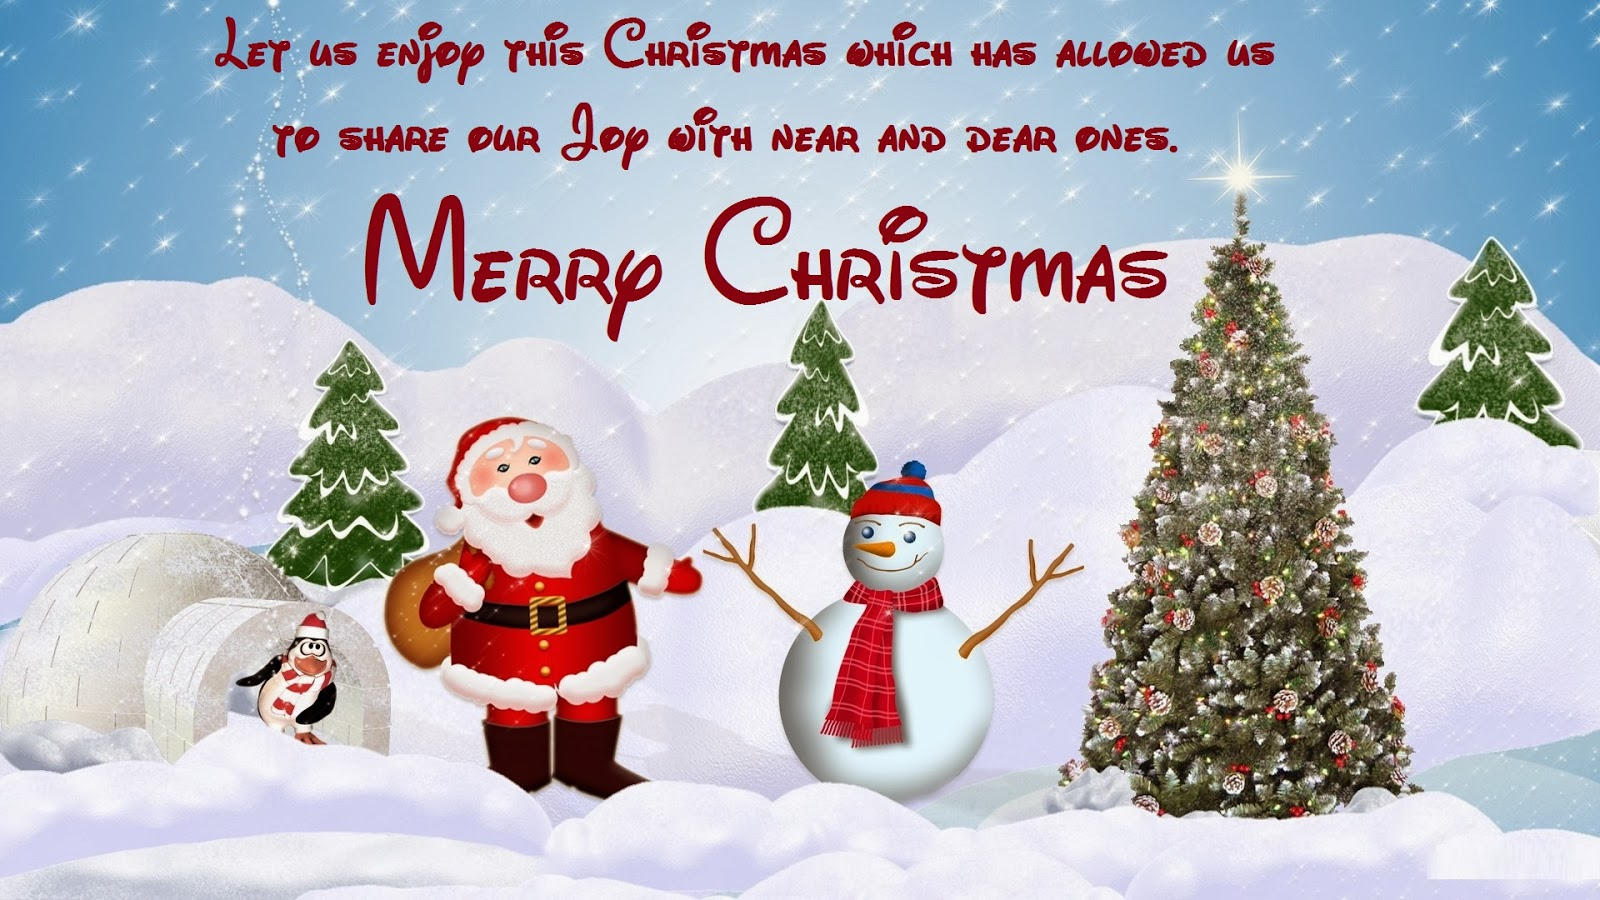 Merry Christmas SMS, Xmas Images with Messages